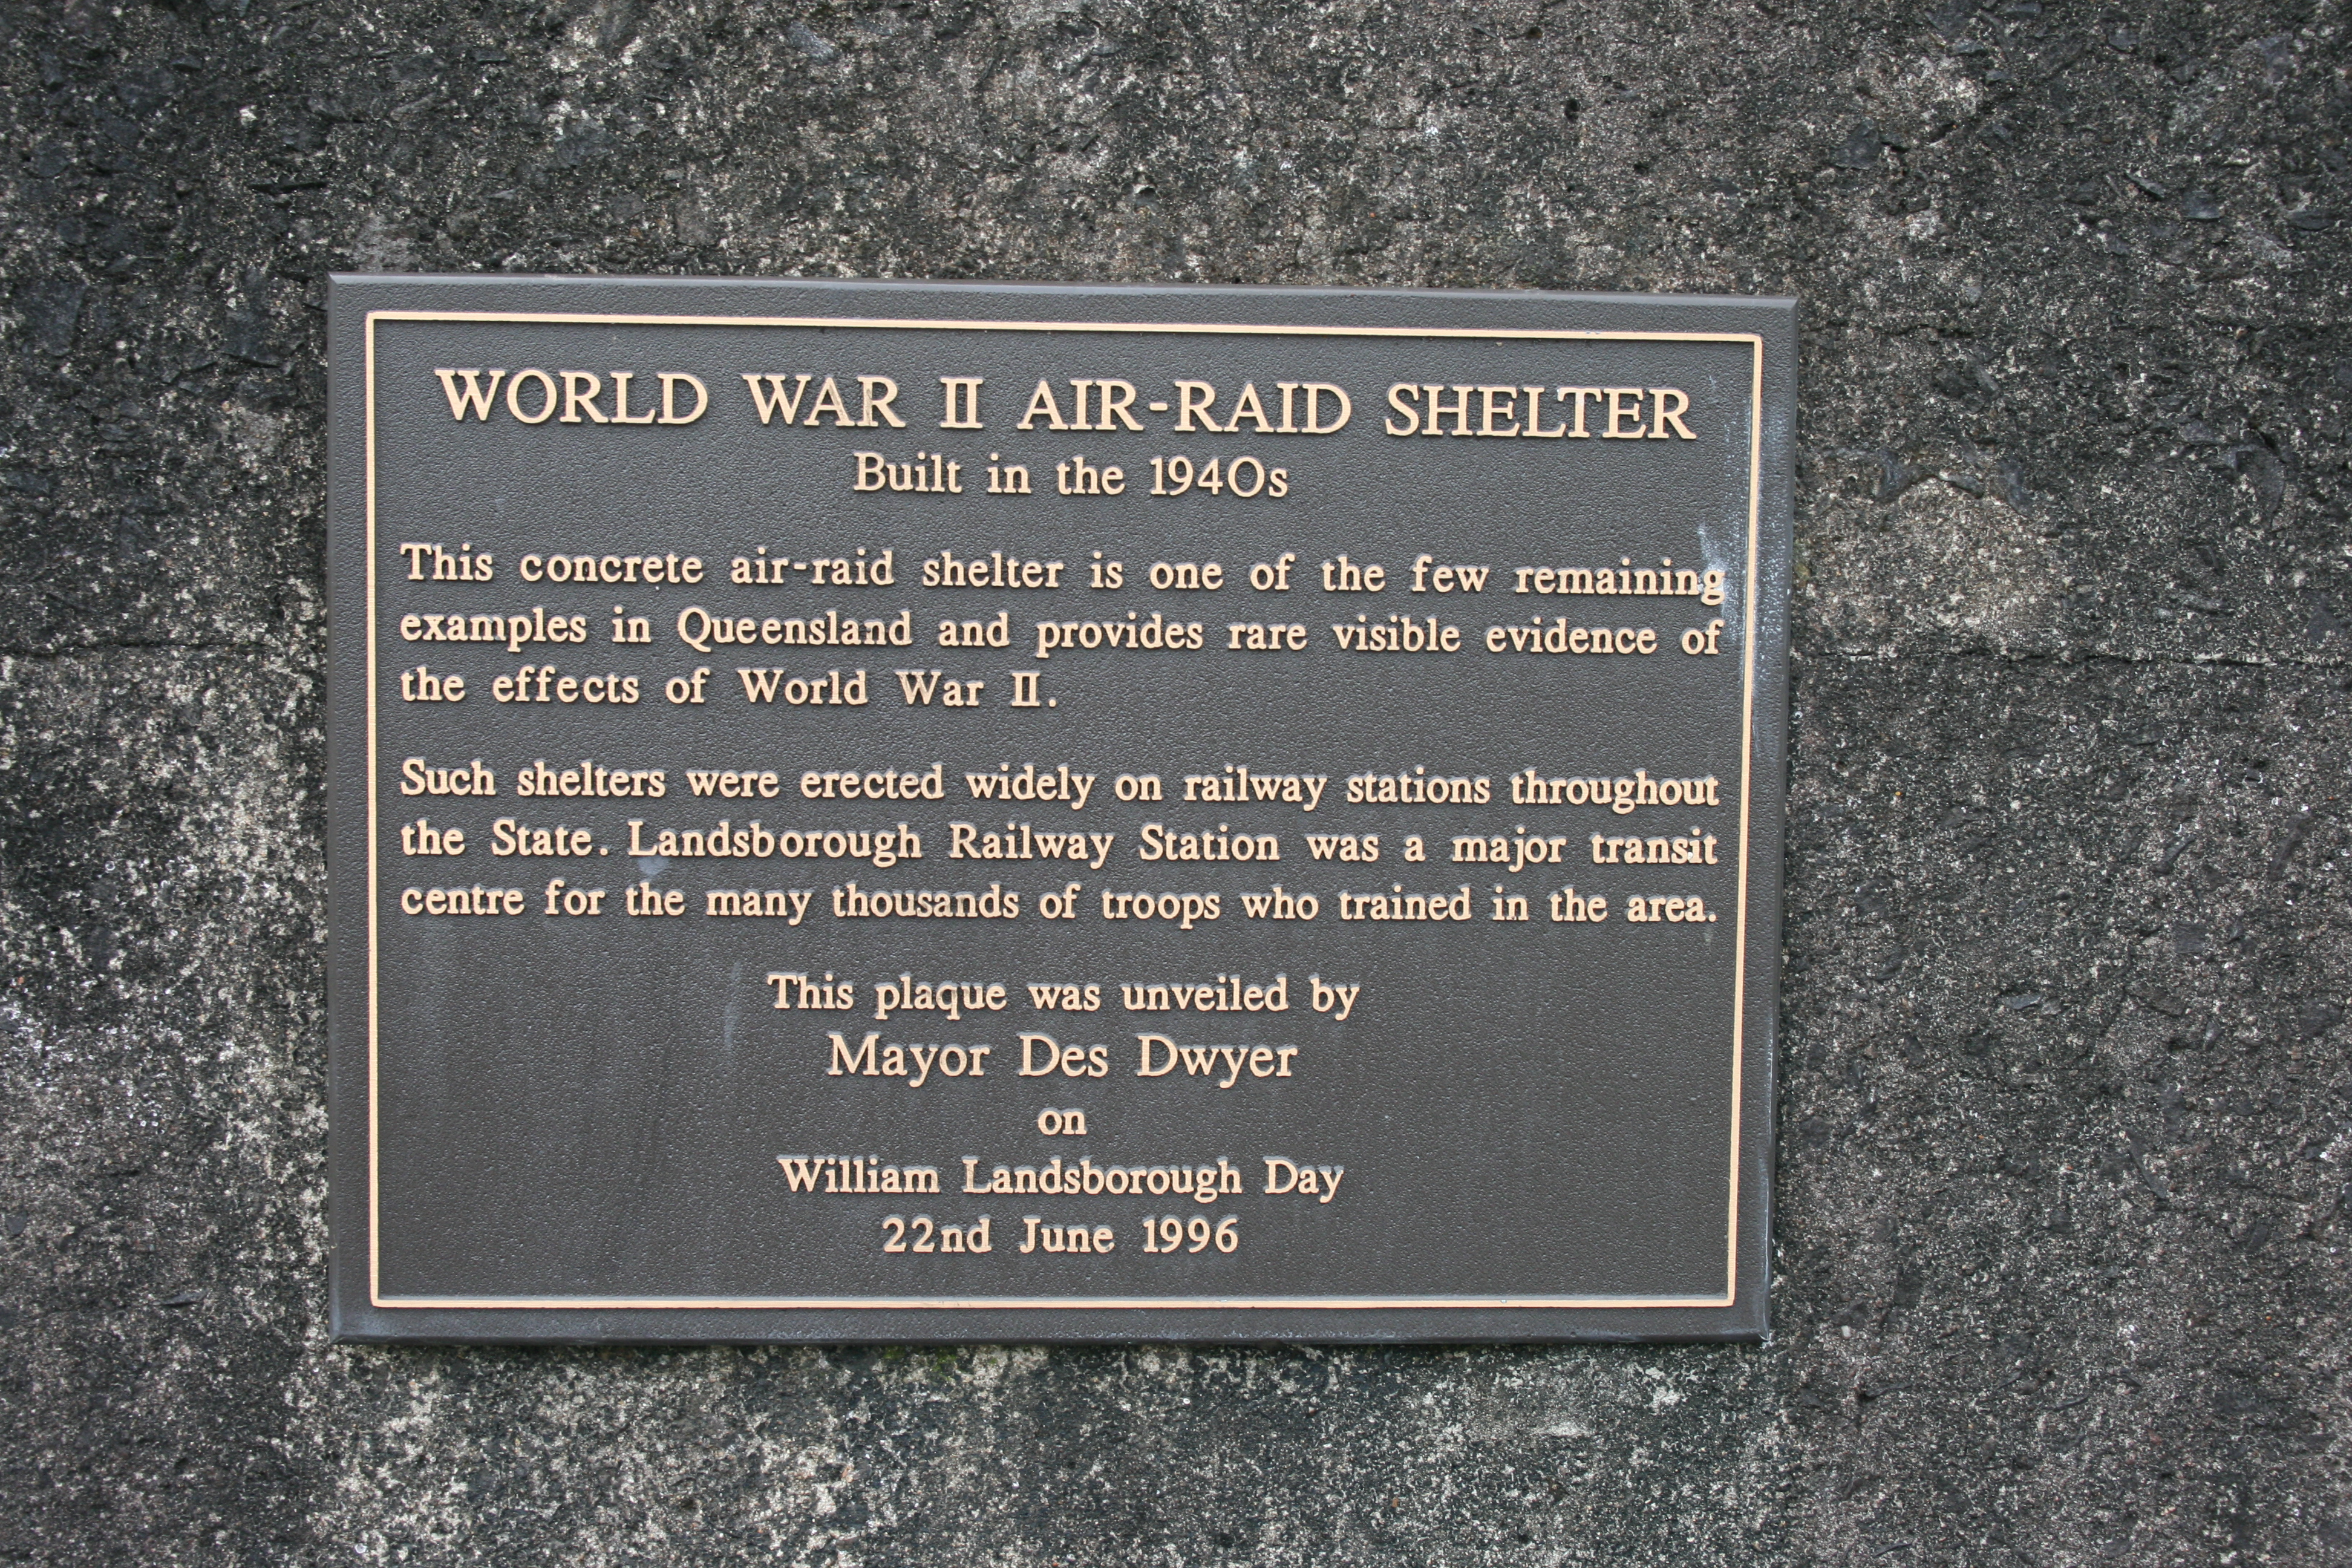 Public Air Raid Shelter Landsborough Railway Station